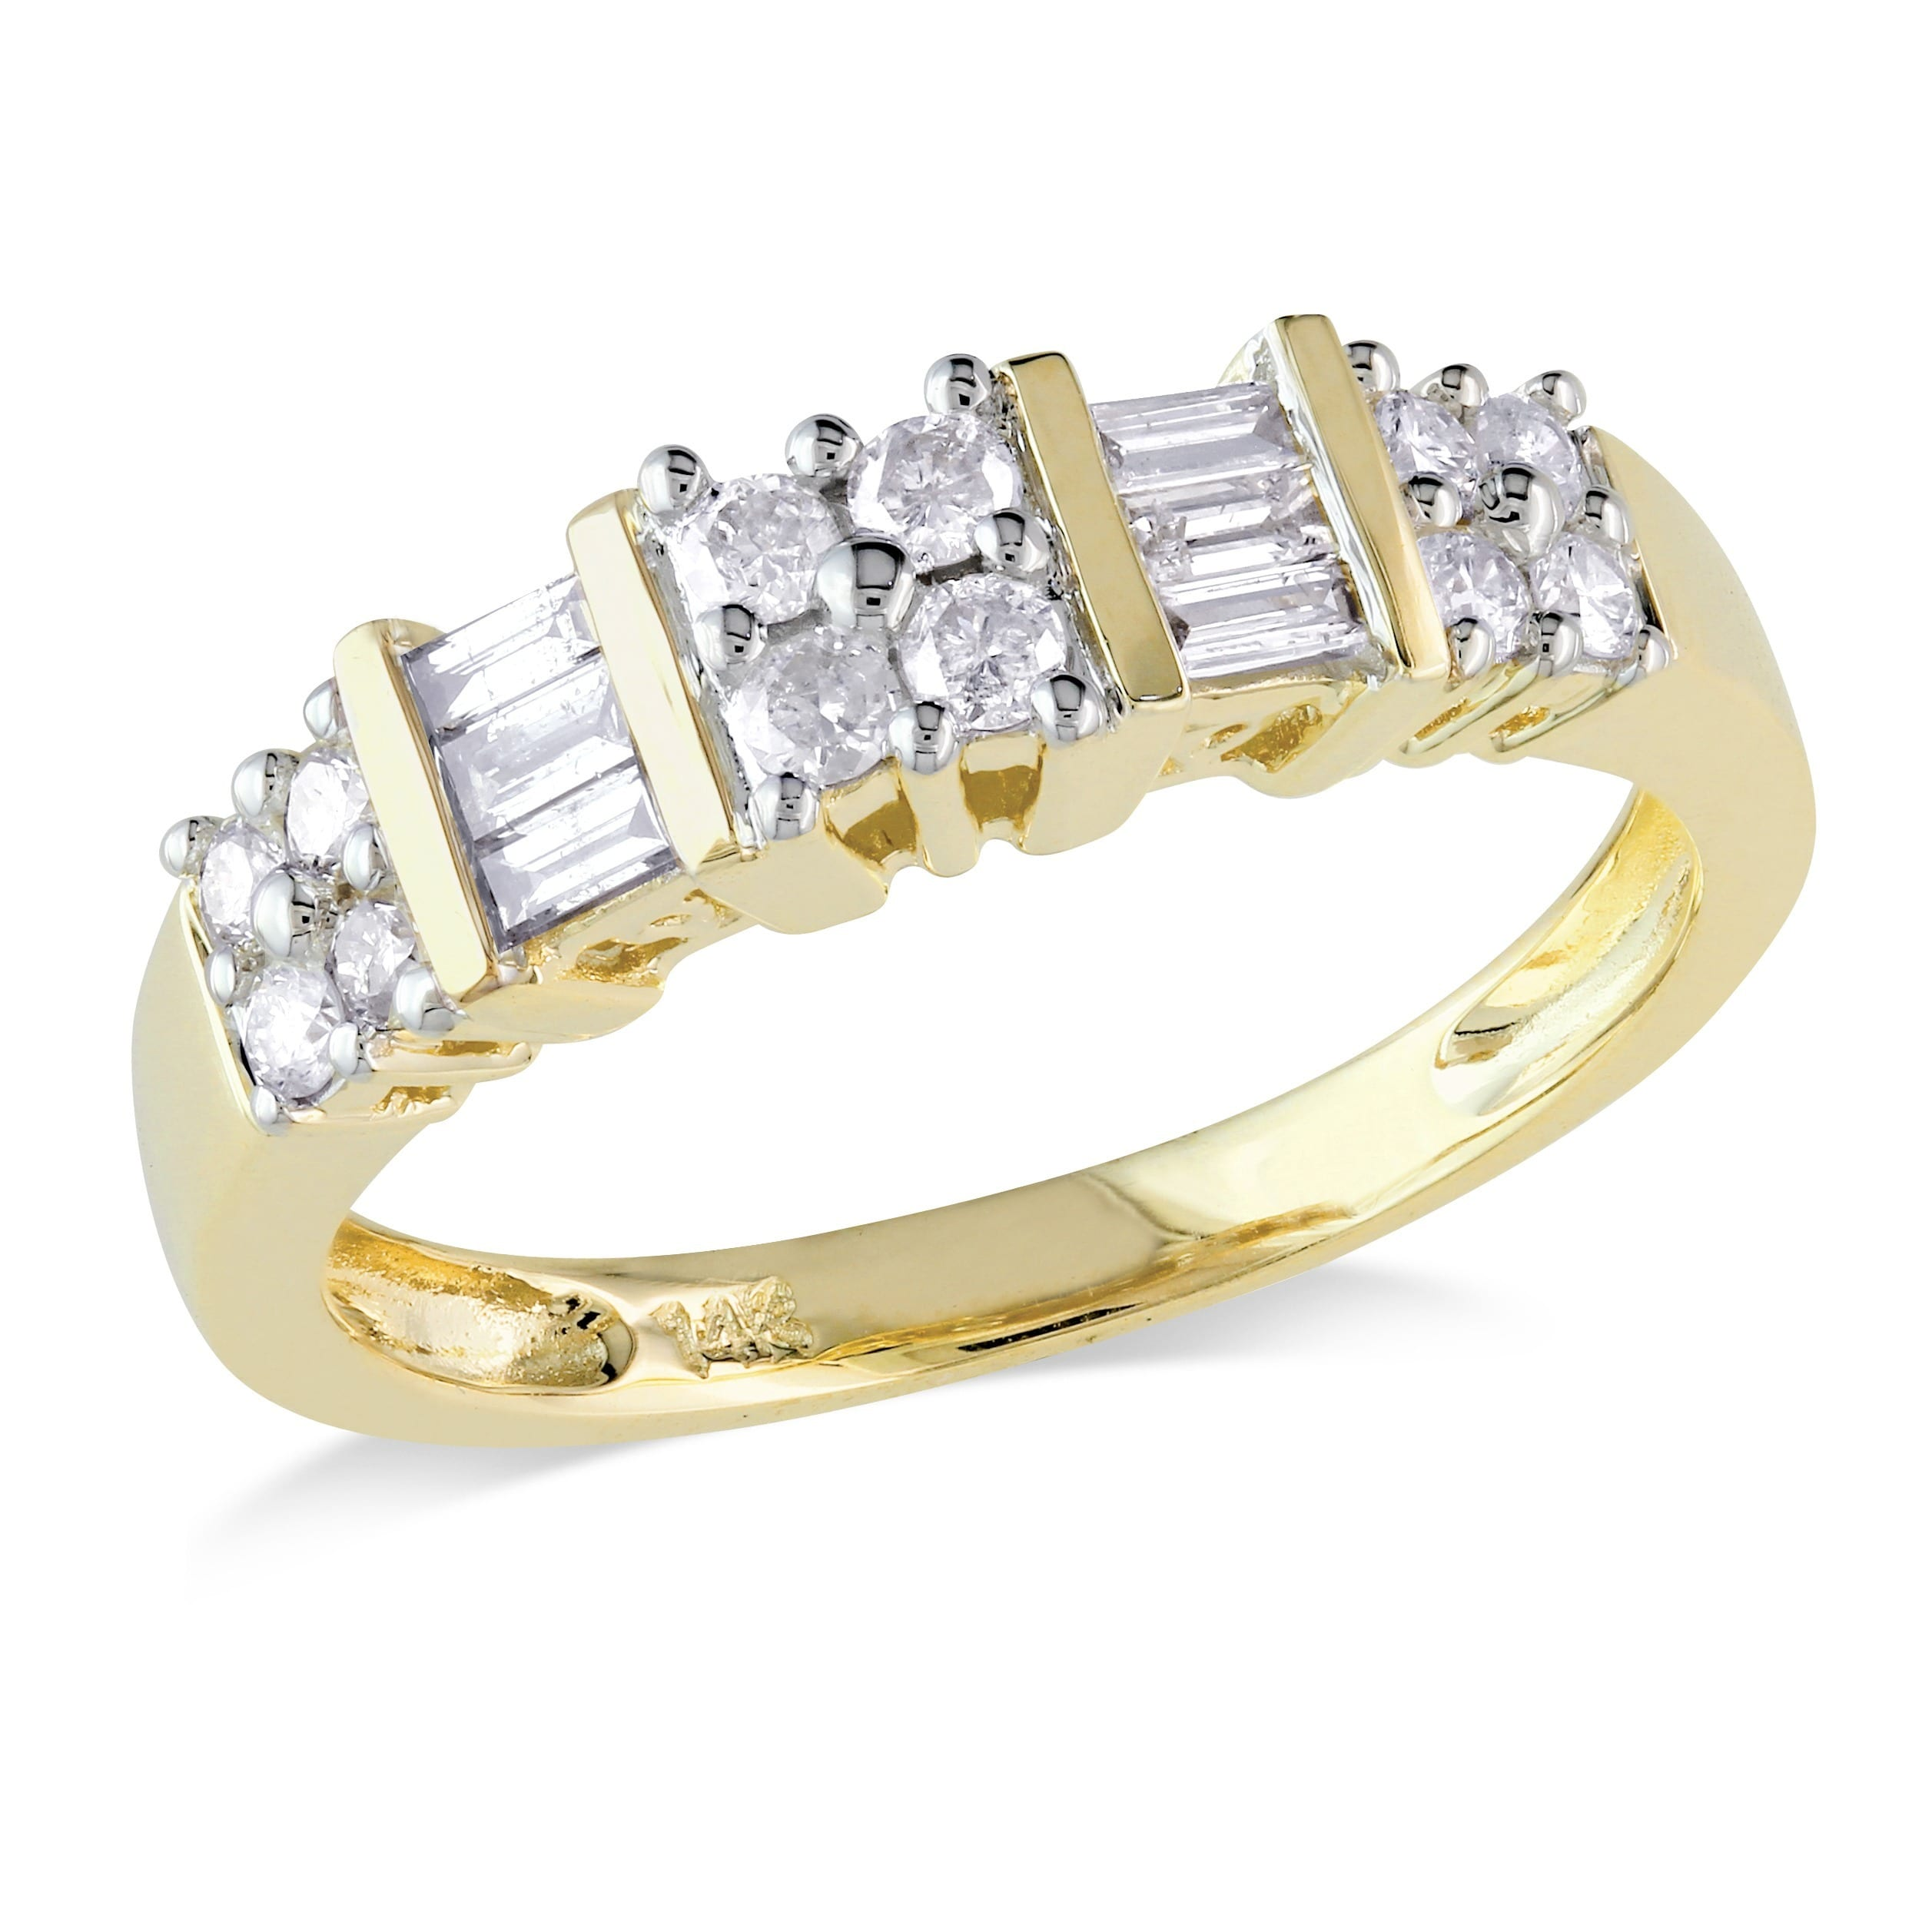 h color and si clarity ring band better gold in wedding baguette i bands yellow diamond anniversary